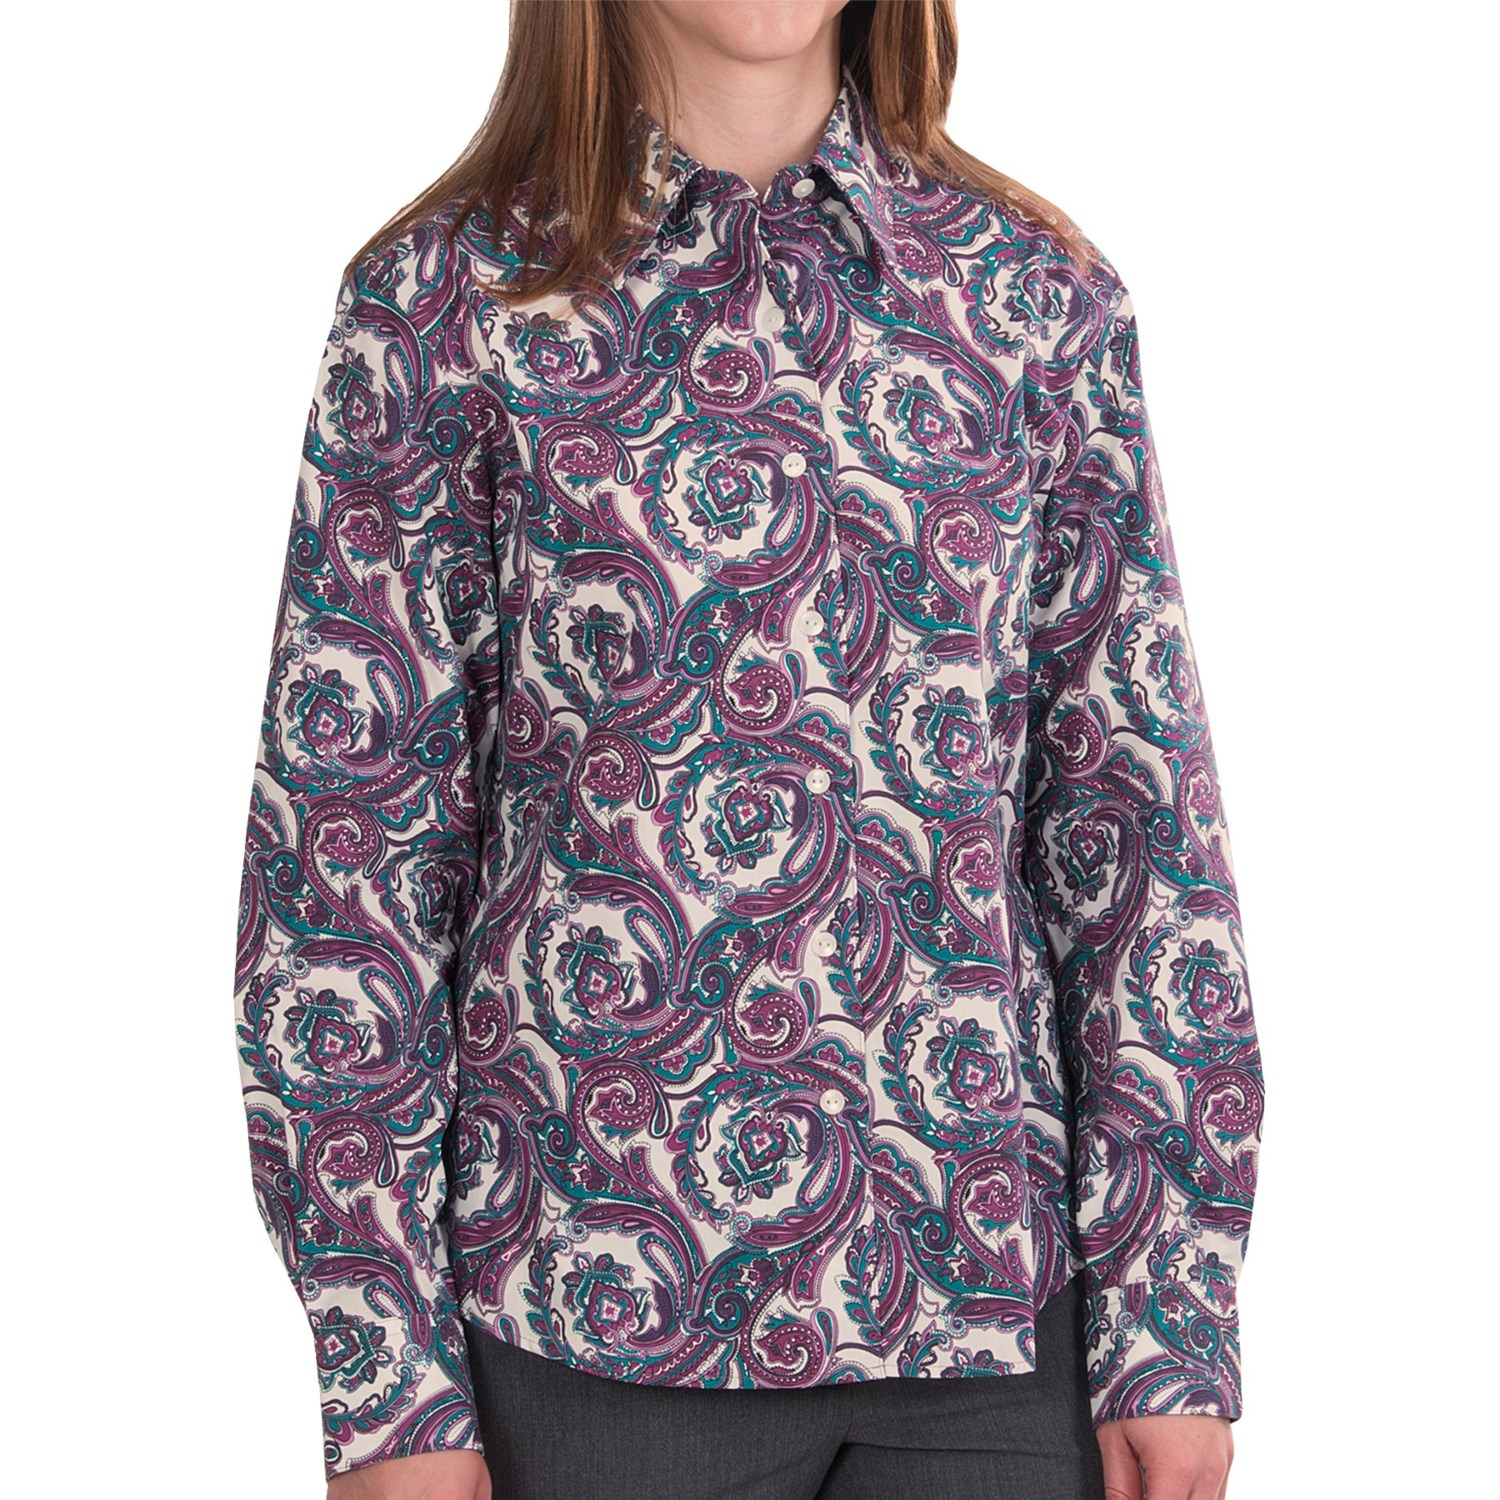 Foxcroft shaped paisley shirt wrinkle free long sleeve Wrinkle free shirts for women